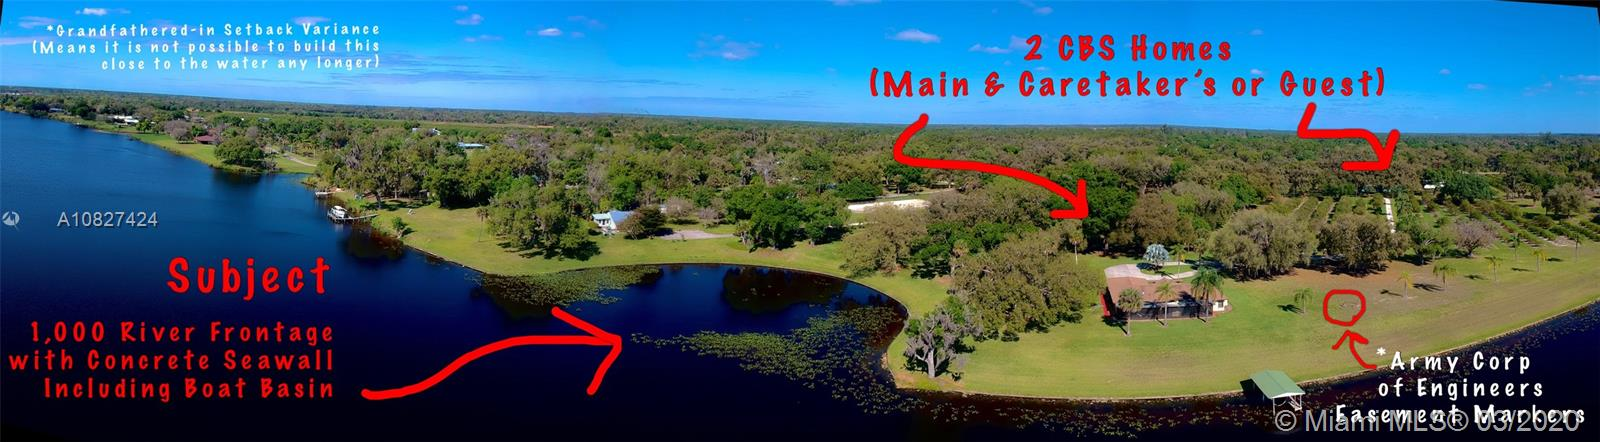 1275 County Road 78, La Belle, FL 33935